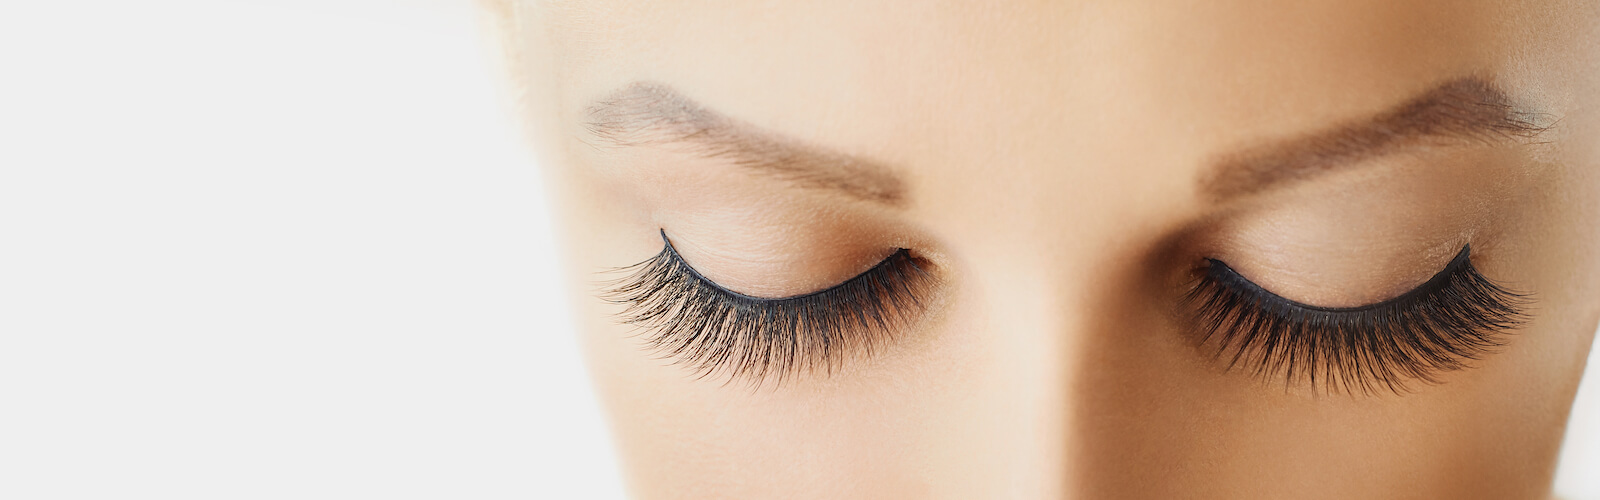 Wimpern lash-lifting